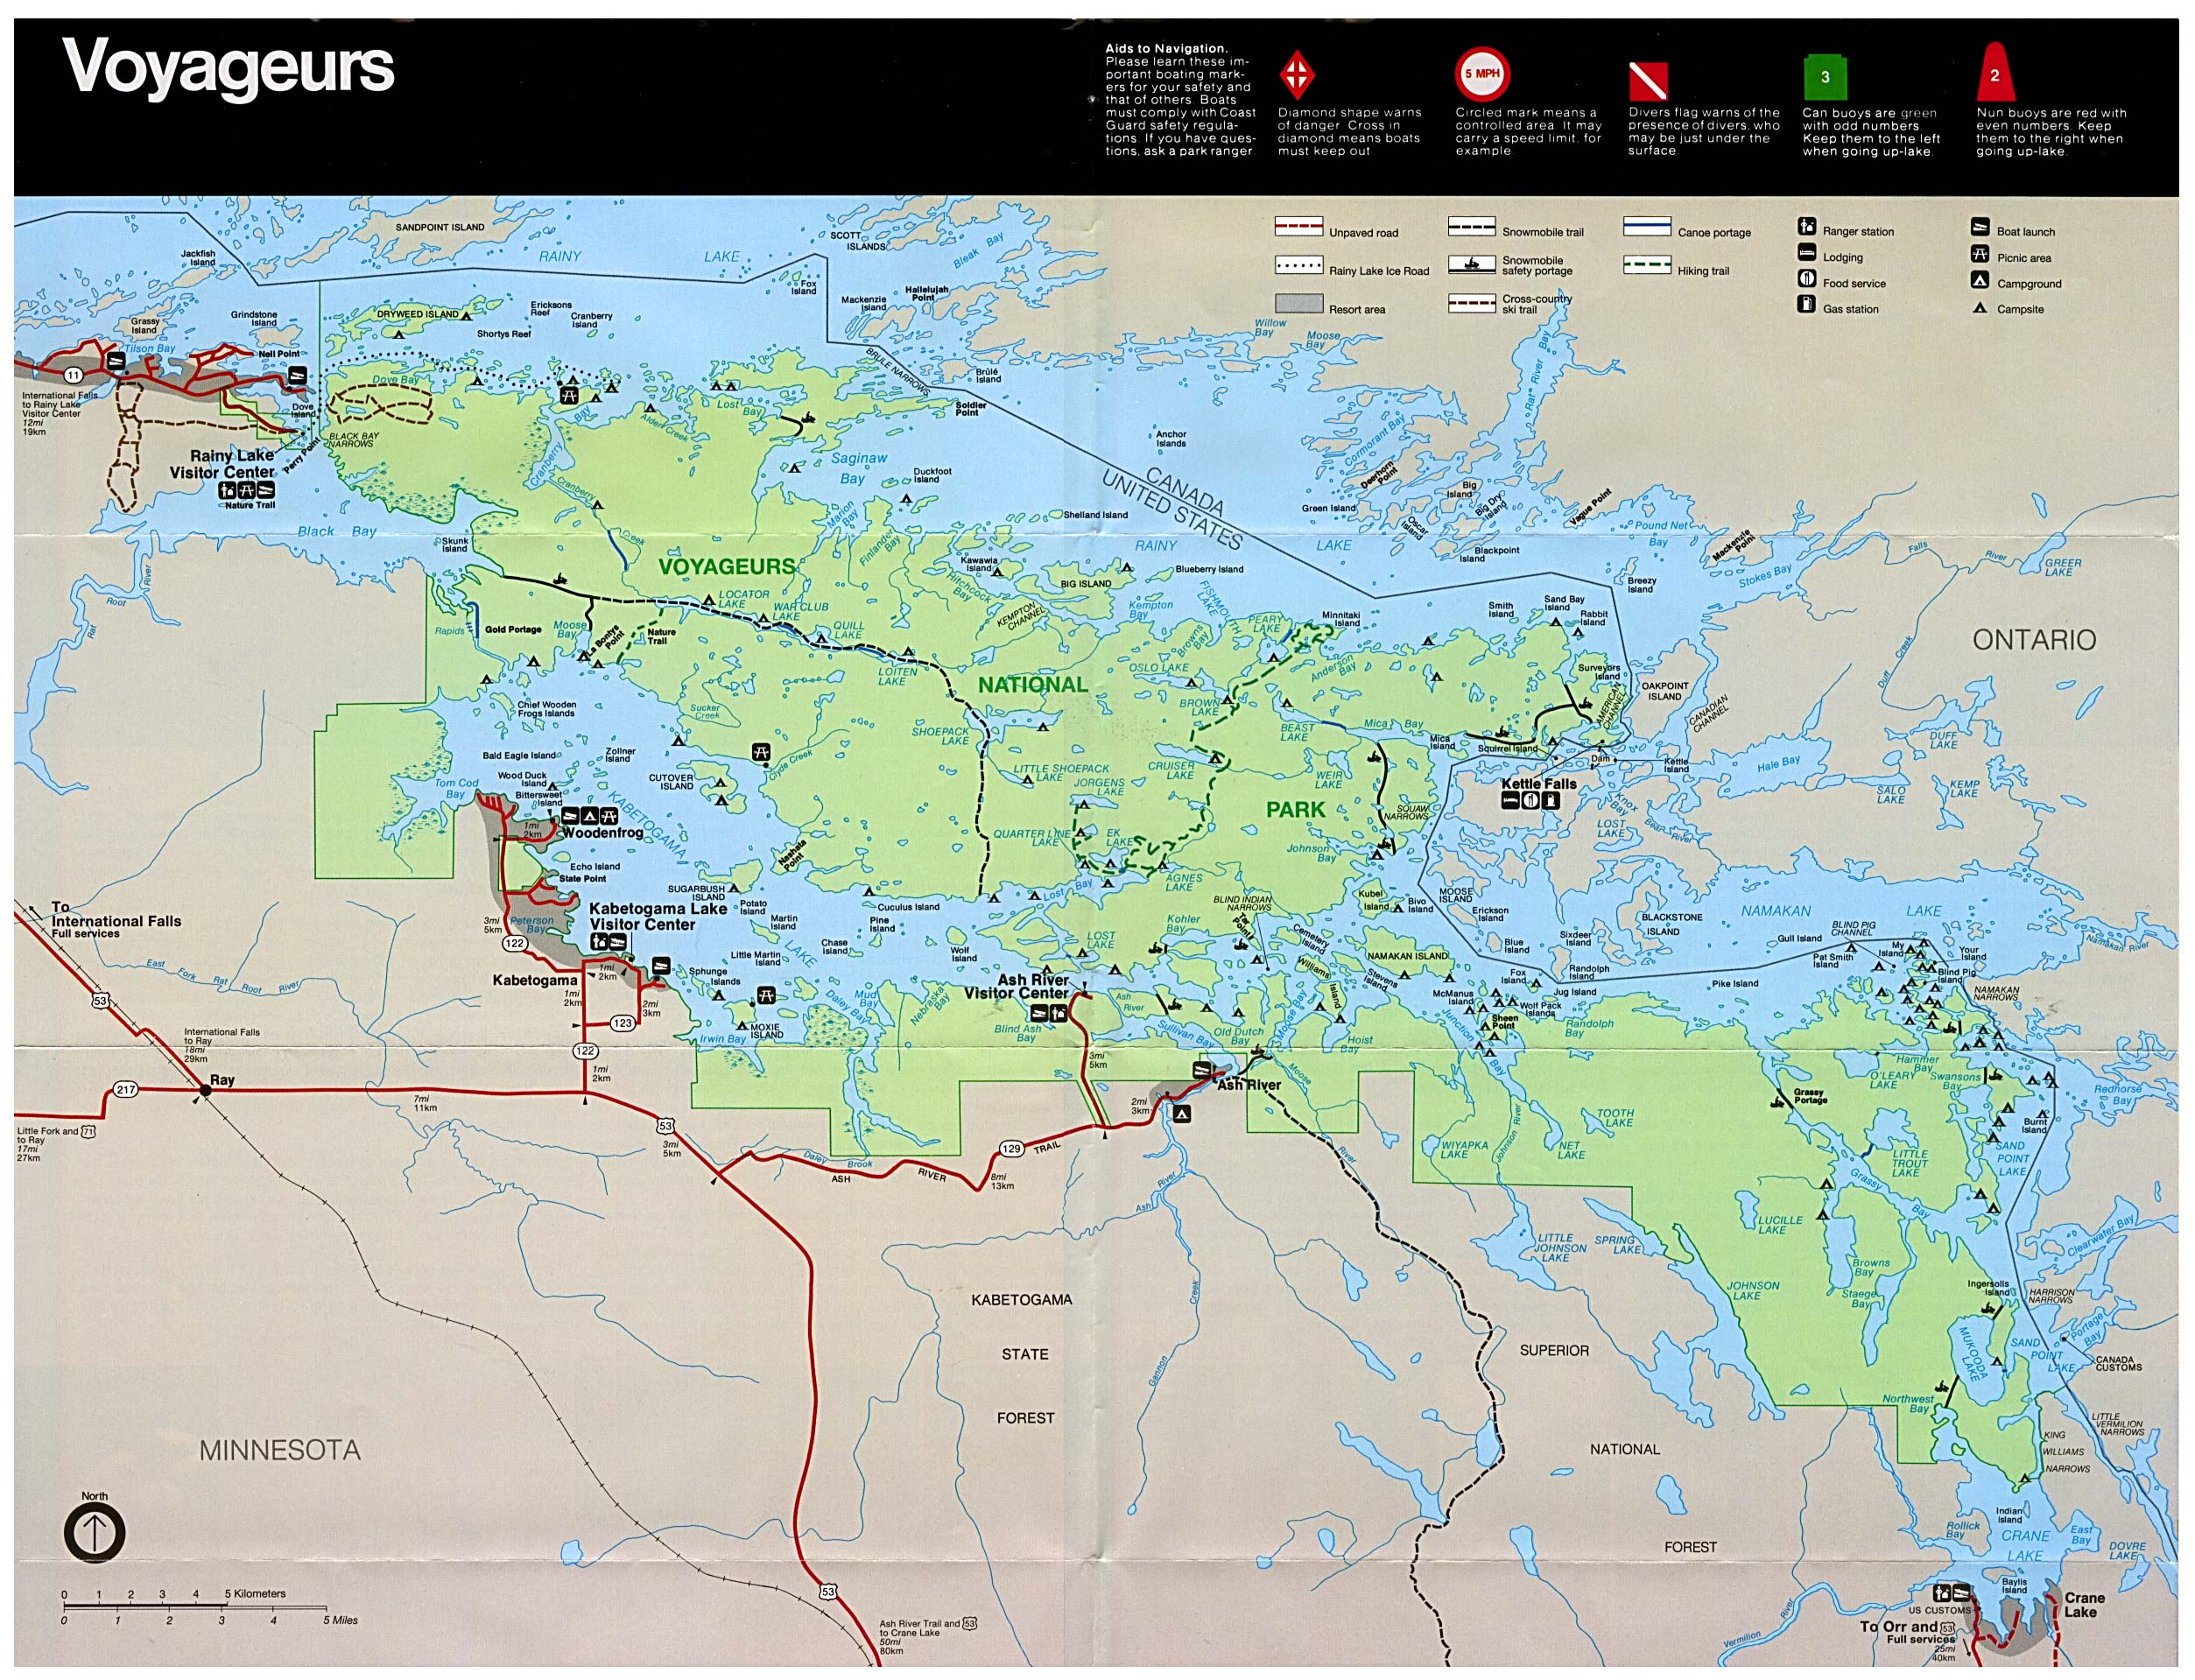 Voyageurs National Park Map, Minnesota, United States